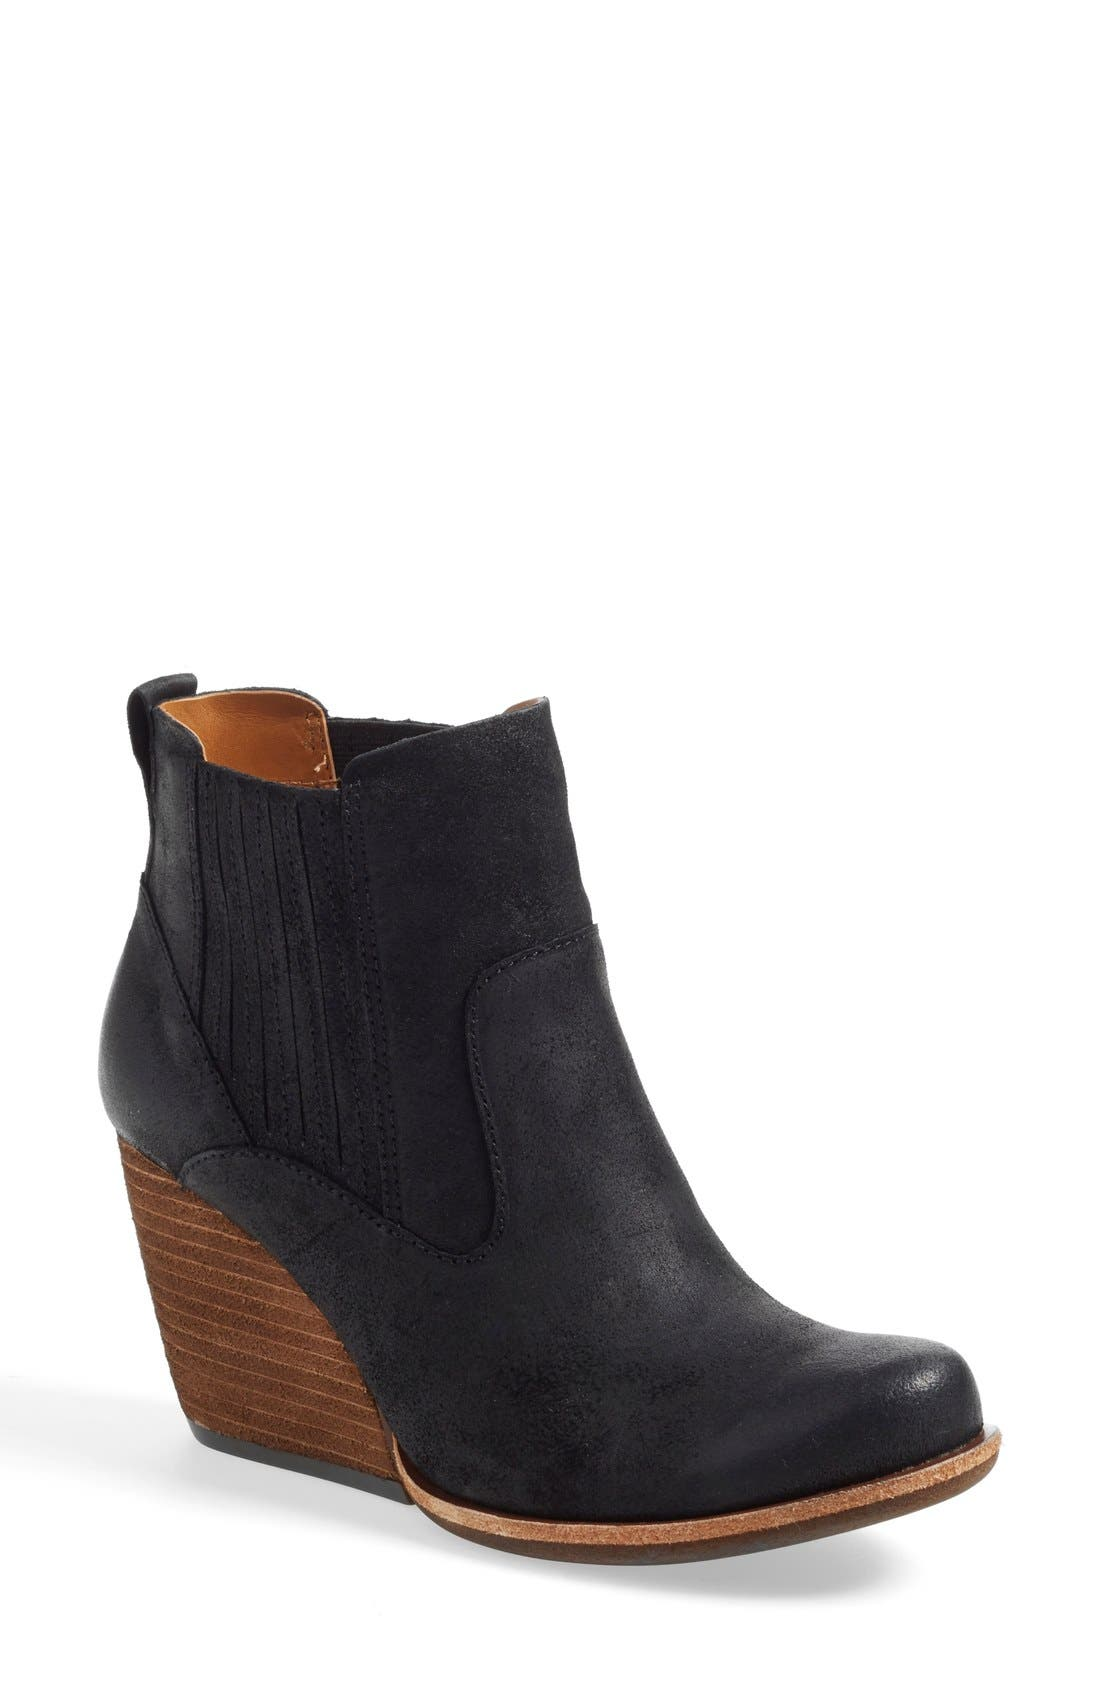 Main Image - Kork-Ease® 'Verdelet' Wedge Bootie (Women)